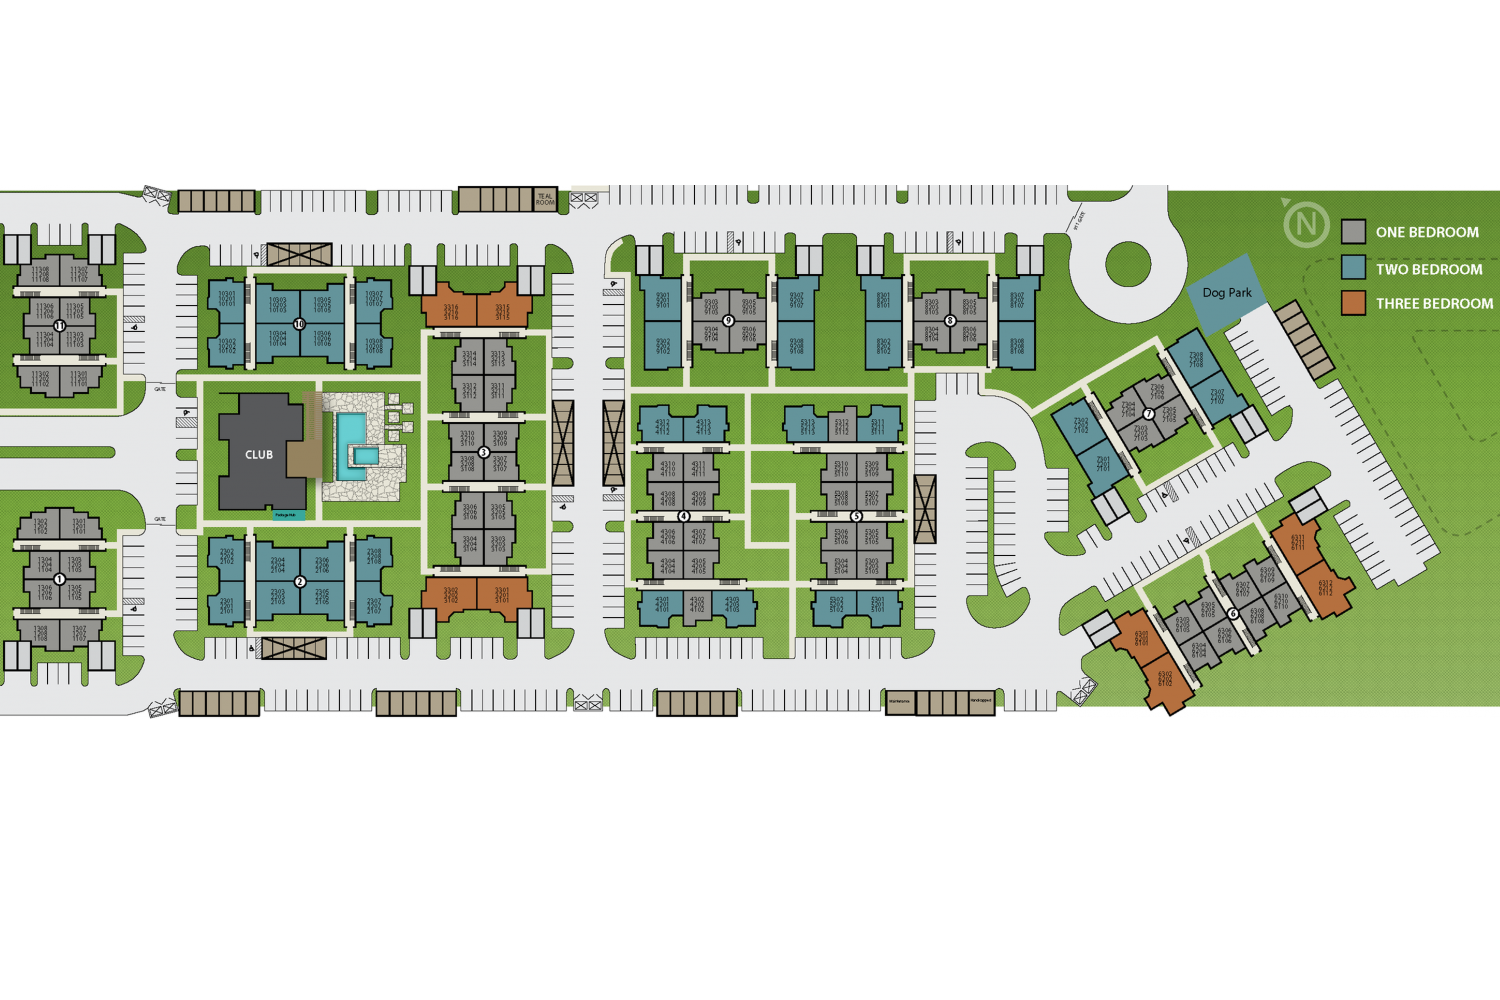 Image of Gated Community for The Grayson